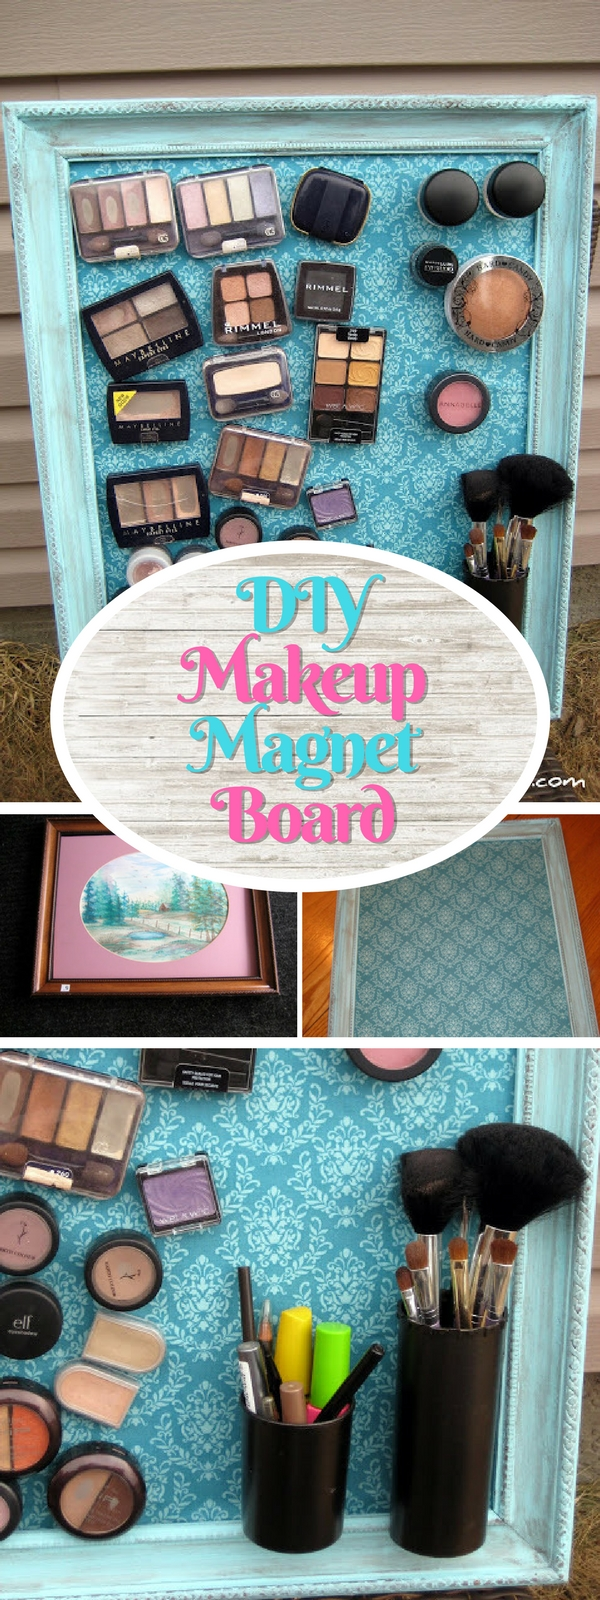 Check out how to make an easy DIY makeup magnet board for a small bathroom